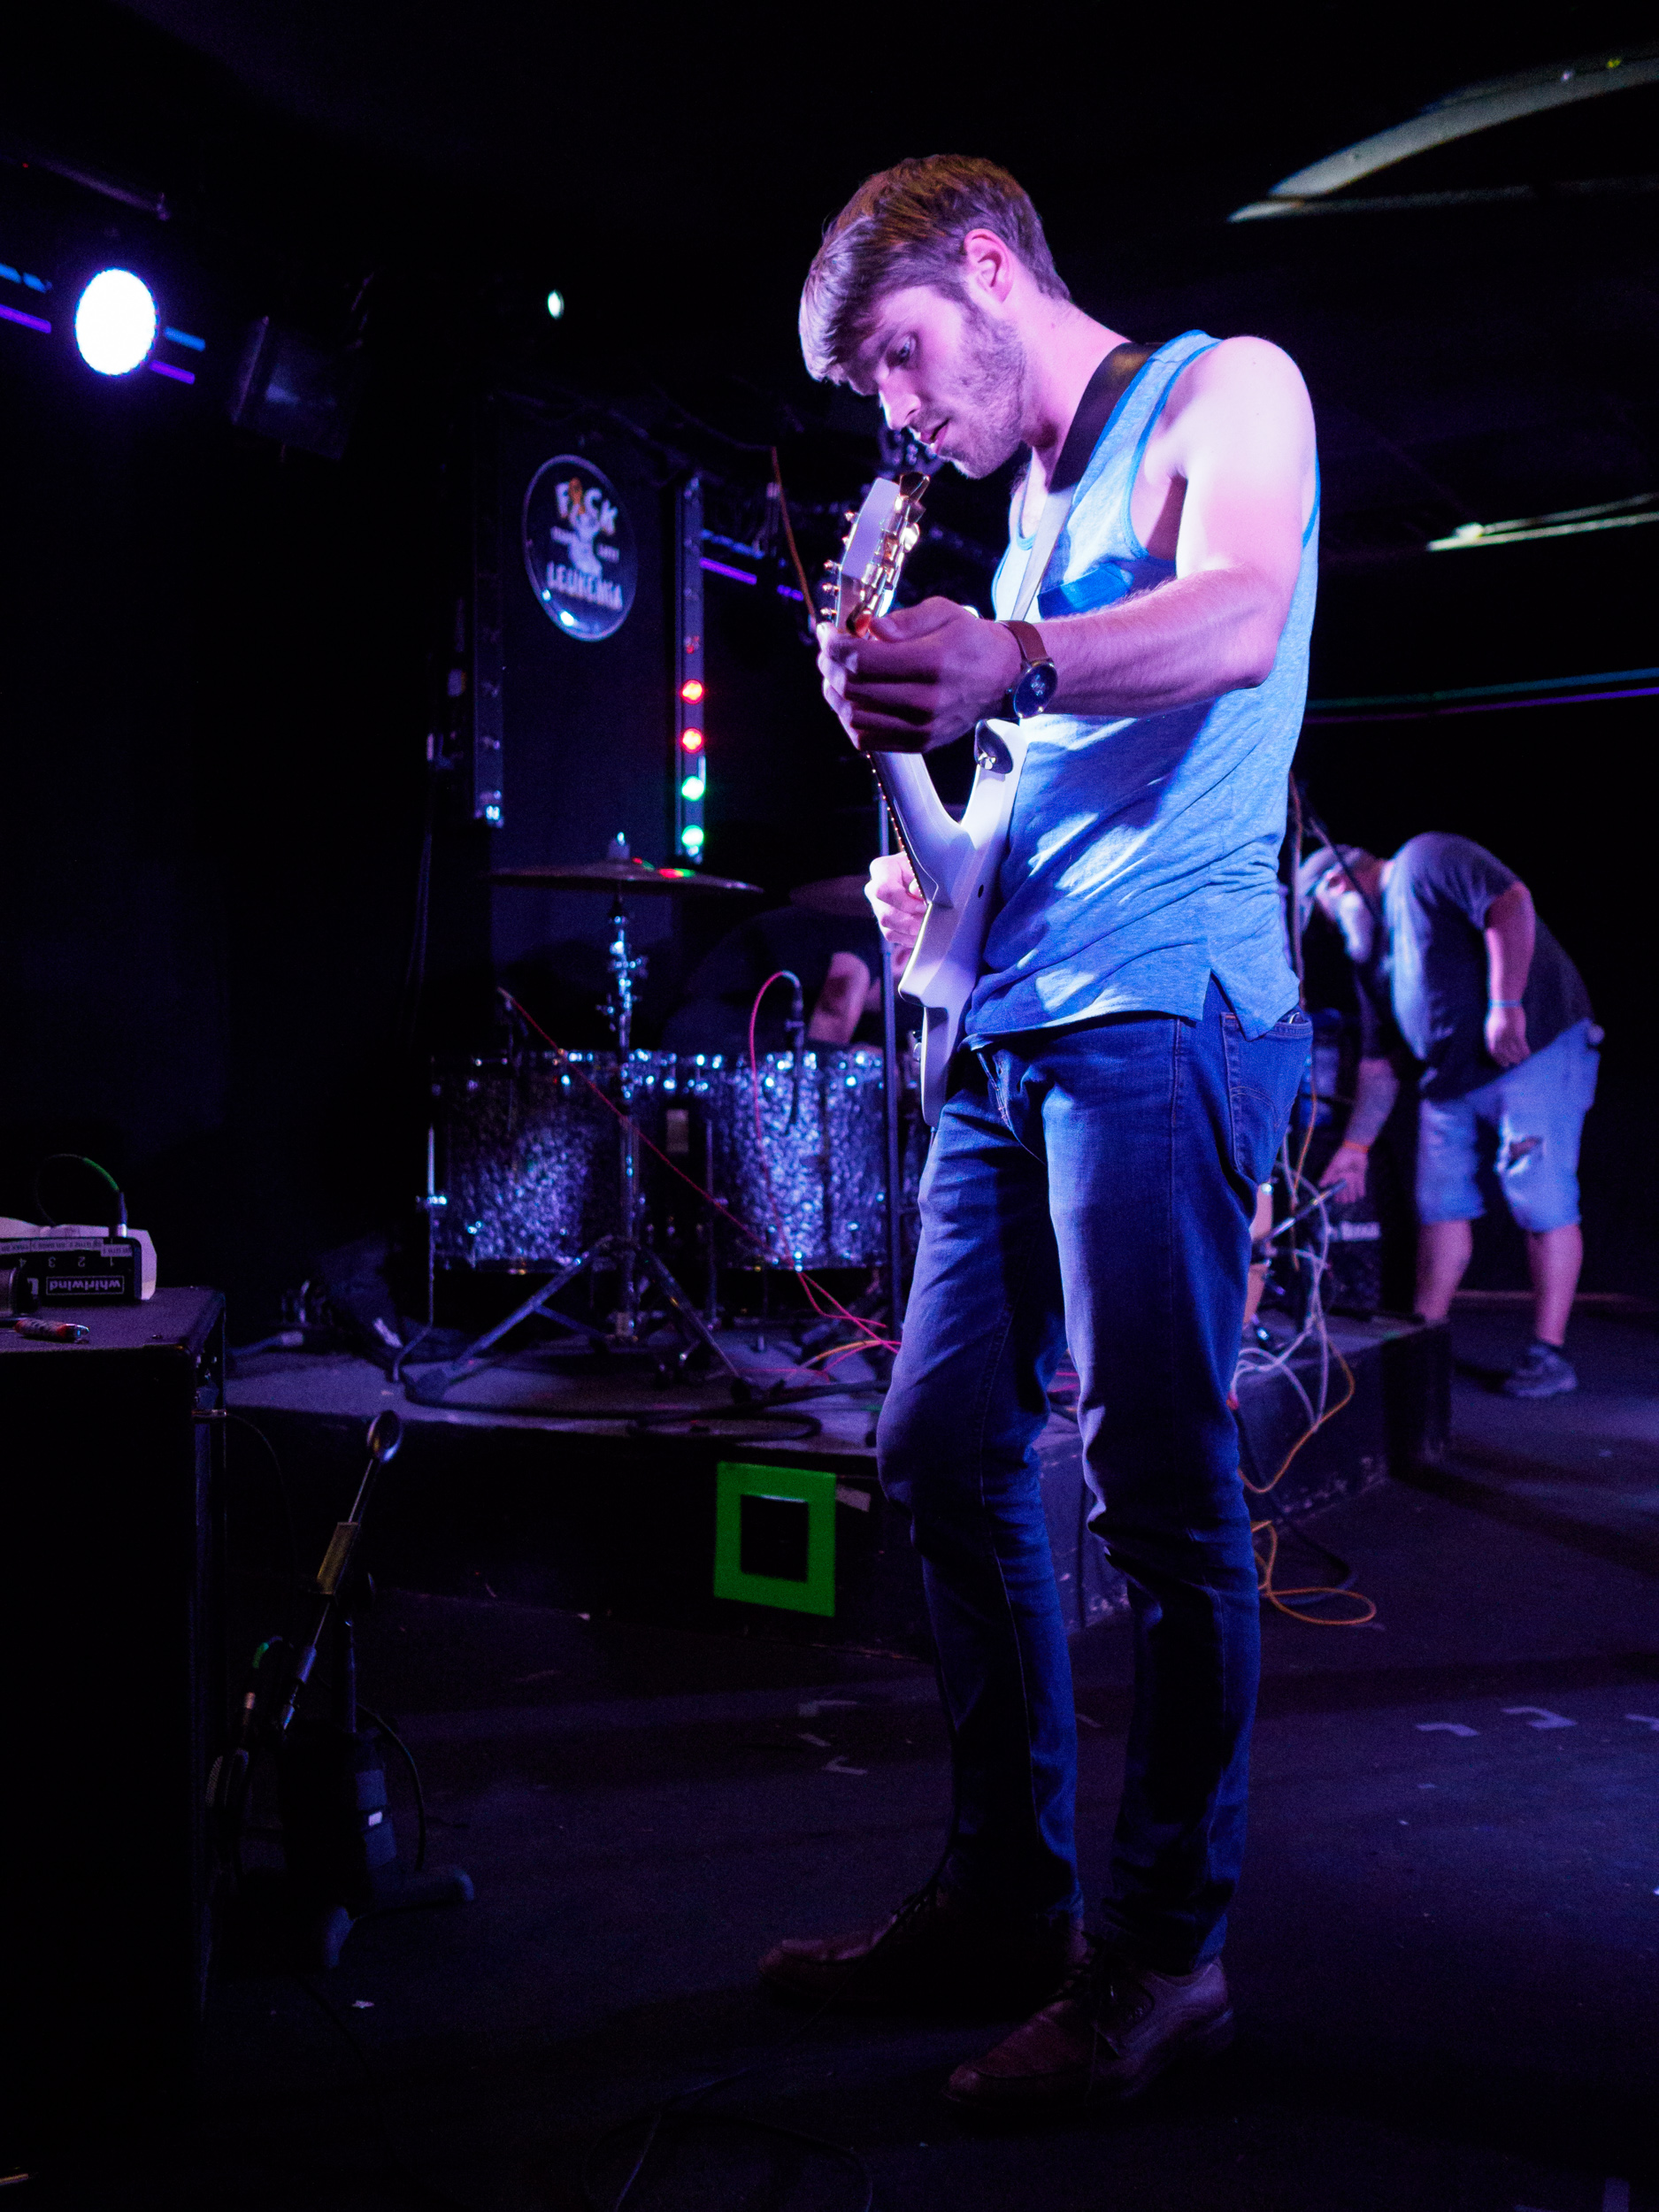 17-06-10_Concert_at_the_Foundry_6100047.JPG